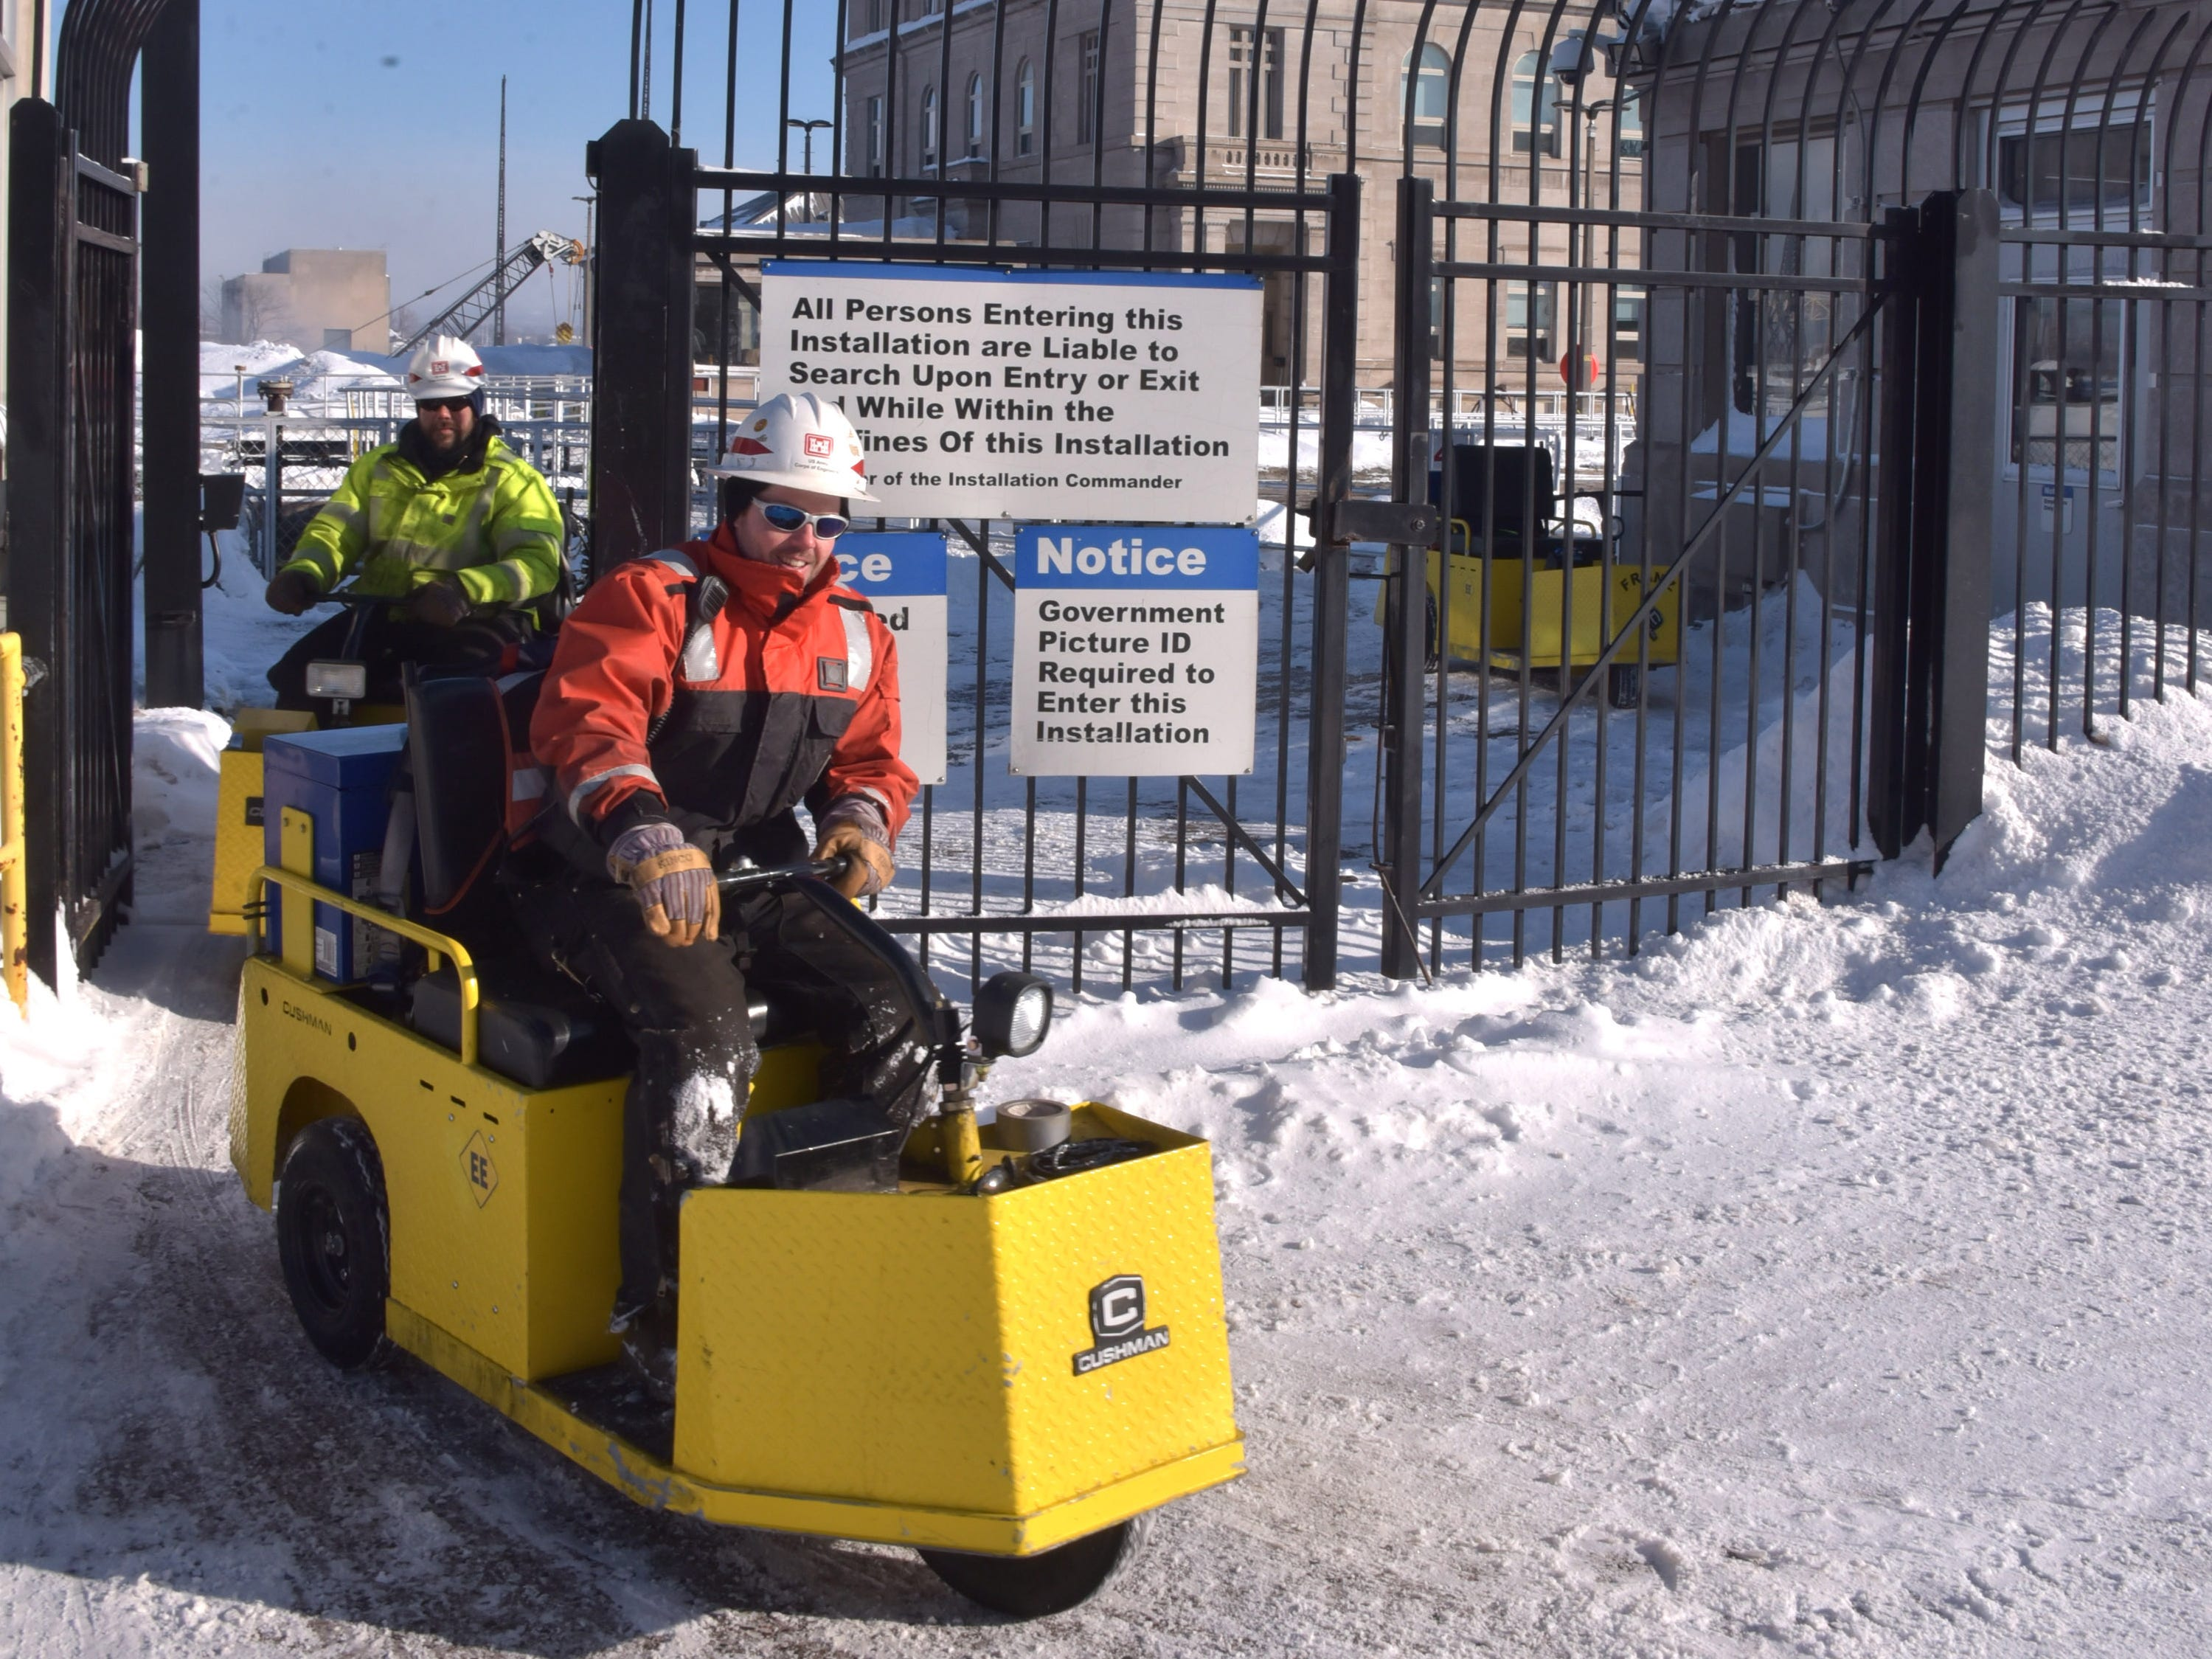 Two U.S. Army Corps of Engineers workers use small electric carts to move around the huge Soo Locks complex.